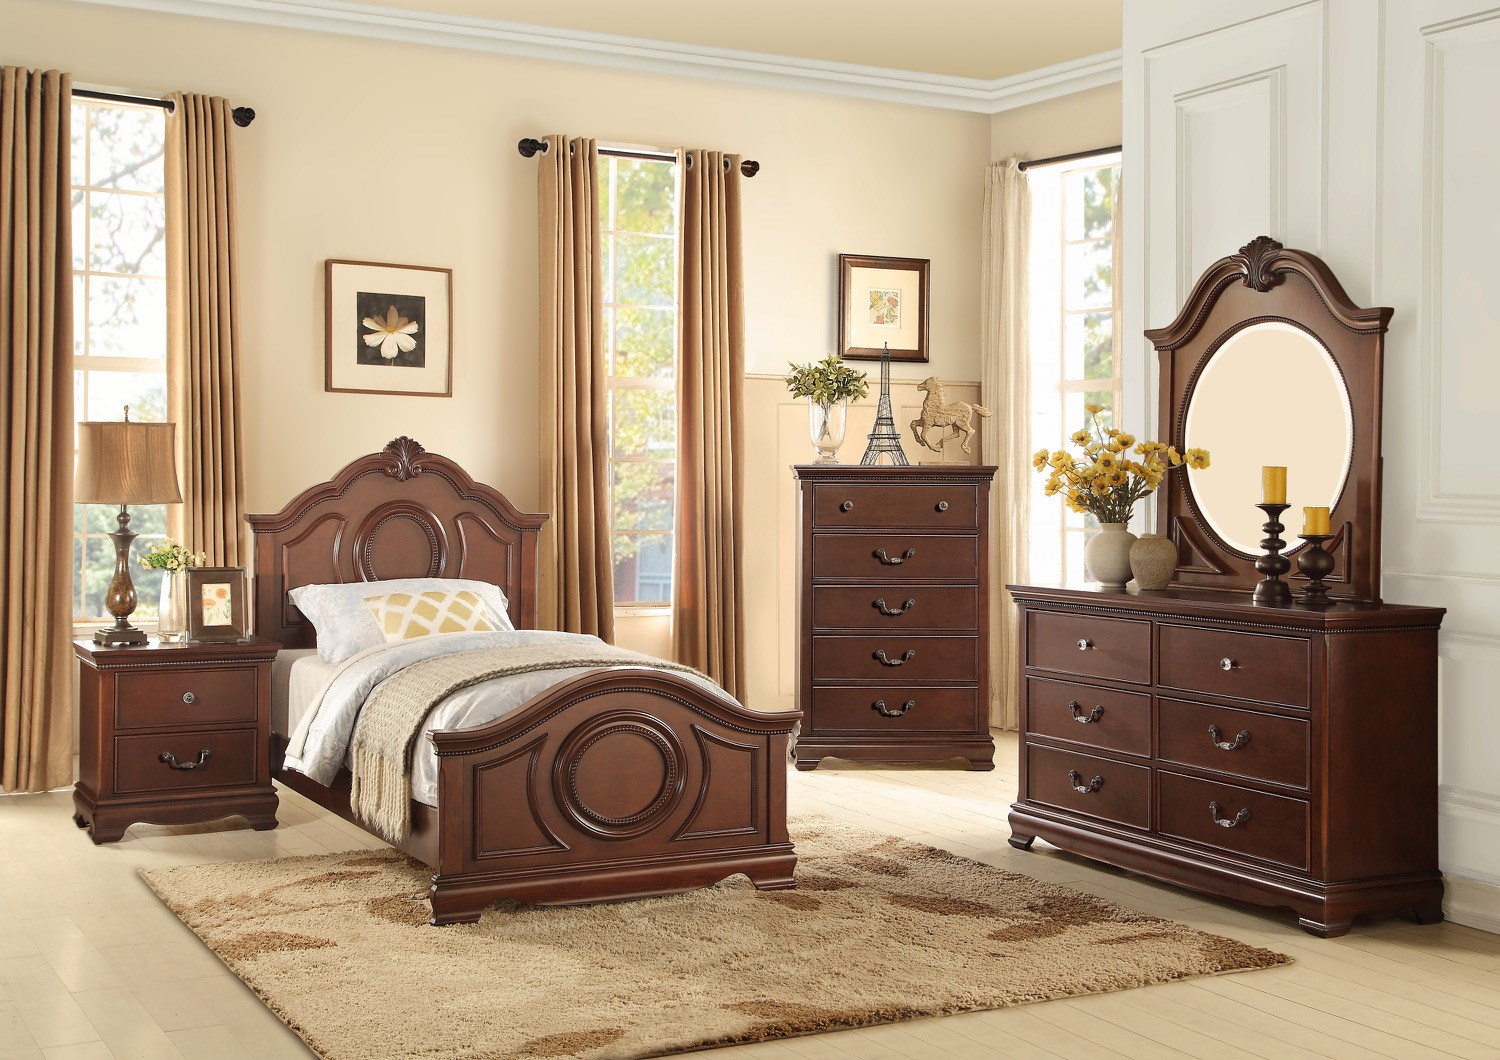 Homelegance 2039C Traditional Twin Bedroom Group - Item Number: 2039C T Bedroom Group 1